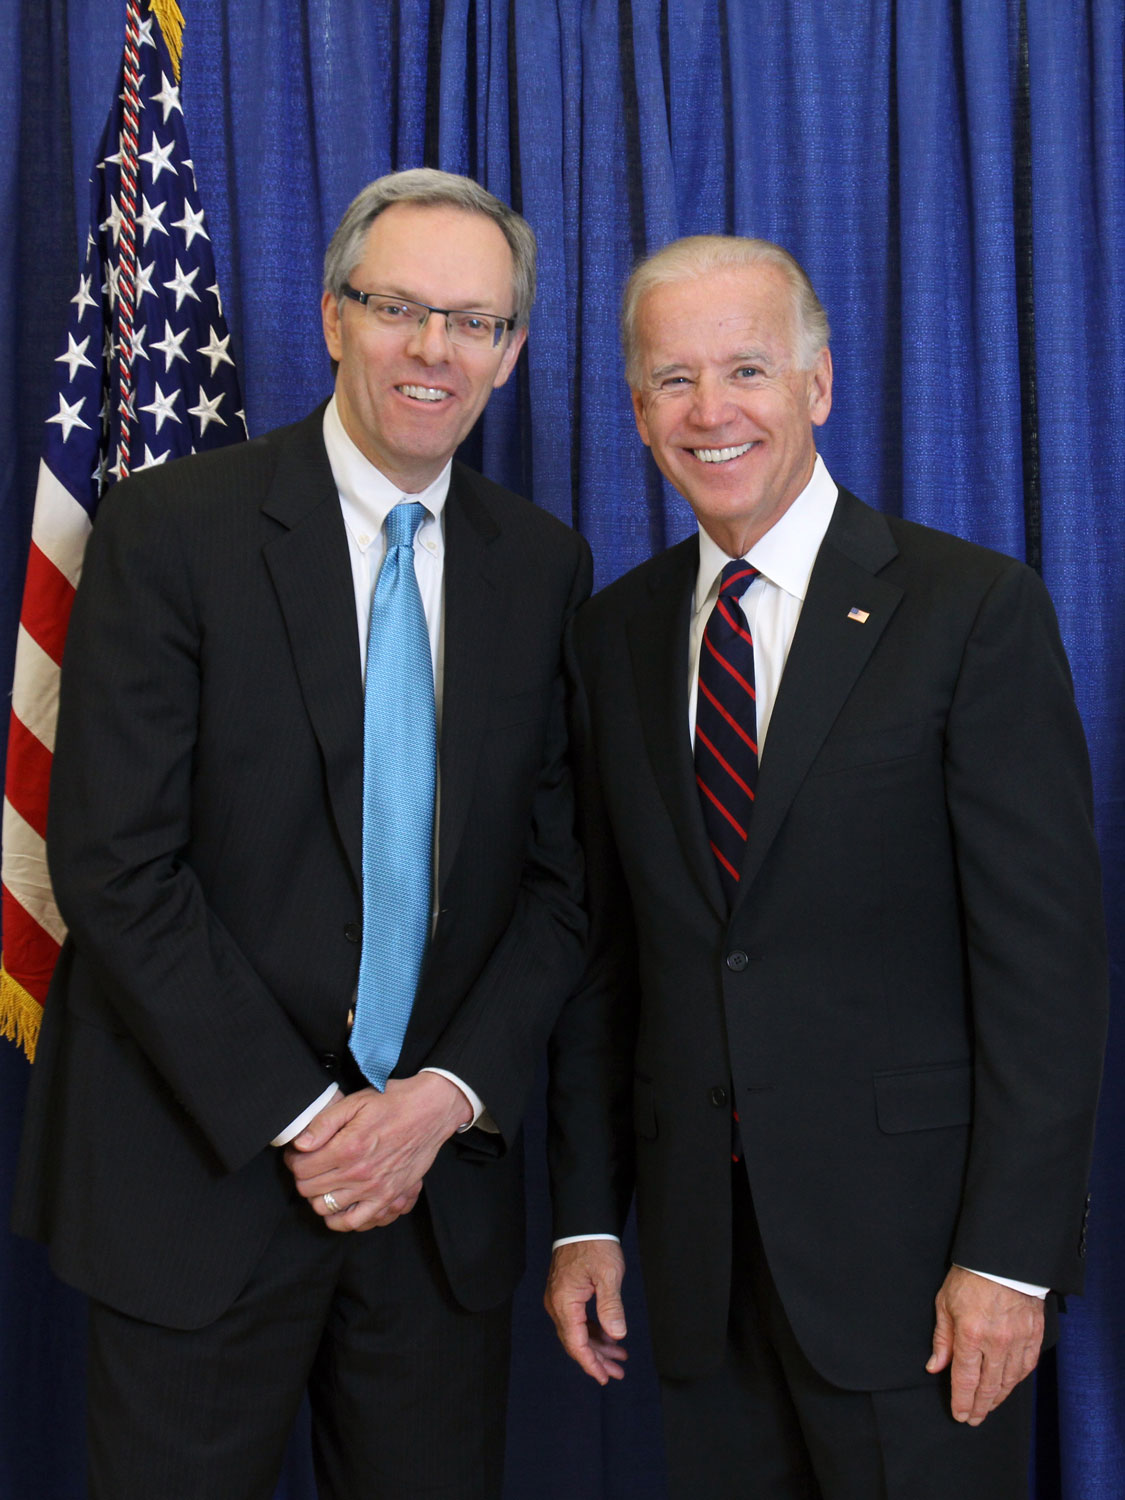 Joe Biden, Spencer Critchley, Carmel, CA, 2012